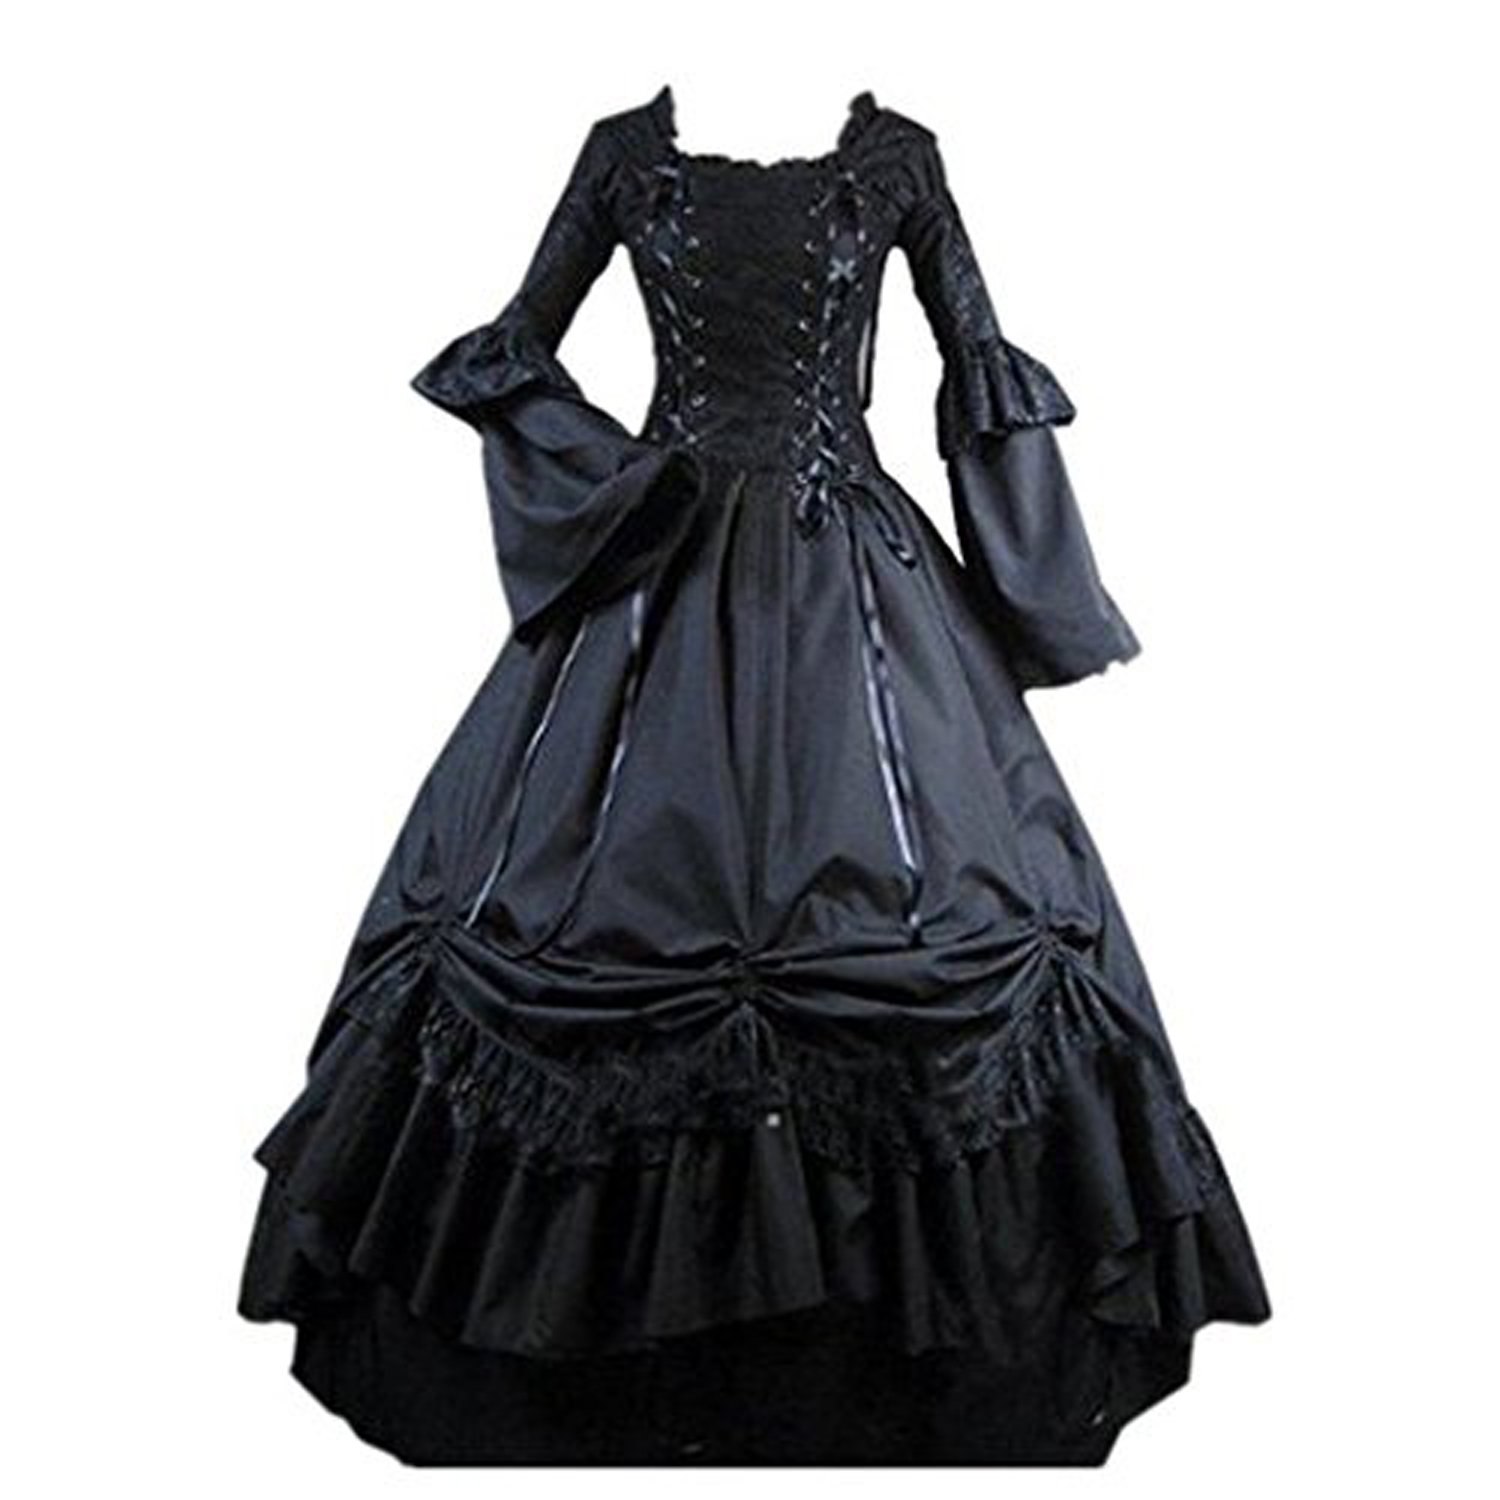 black victorian dress wwwpixsharkcom images